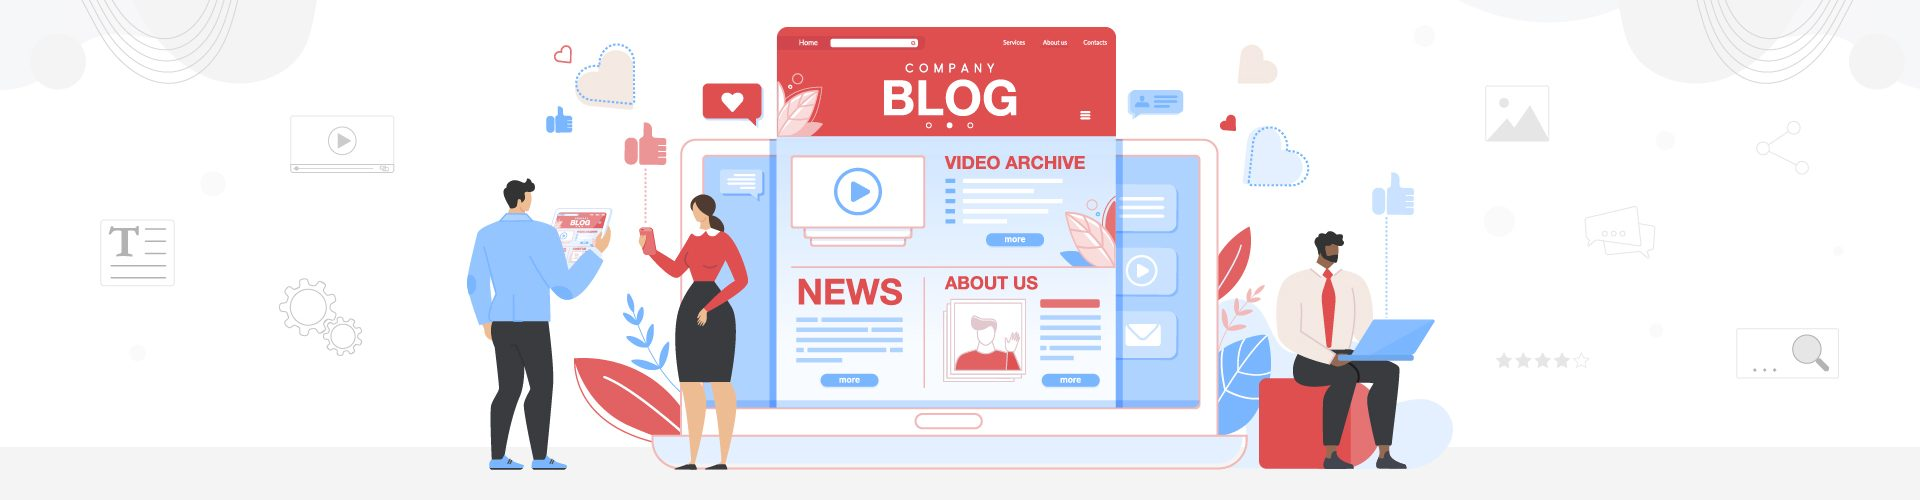 How to Start a Successful Blog & Make Money Online 2021